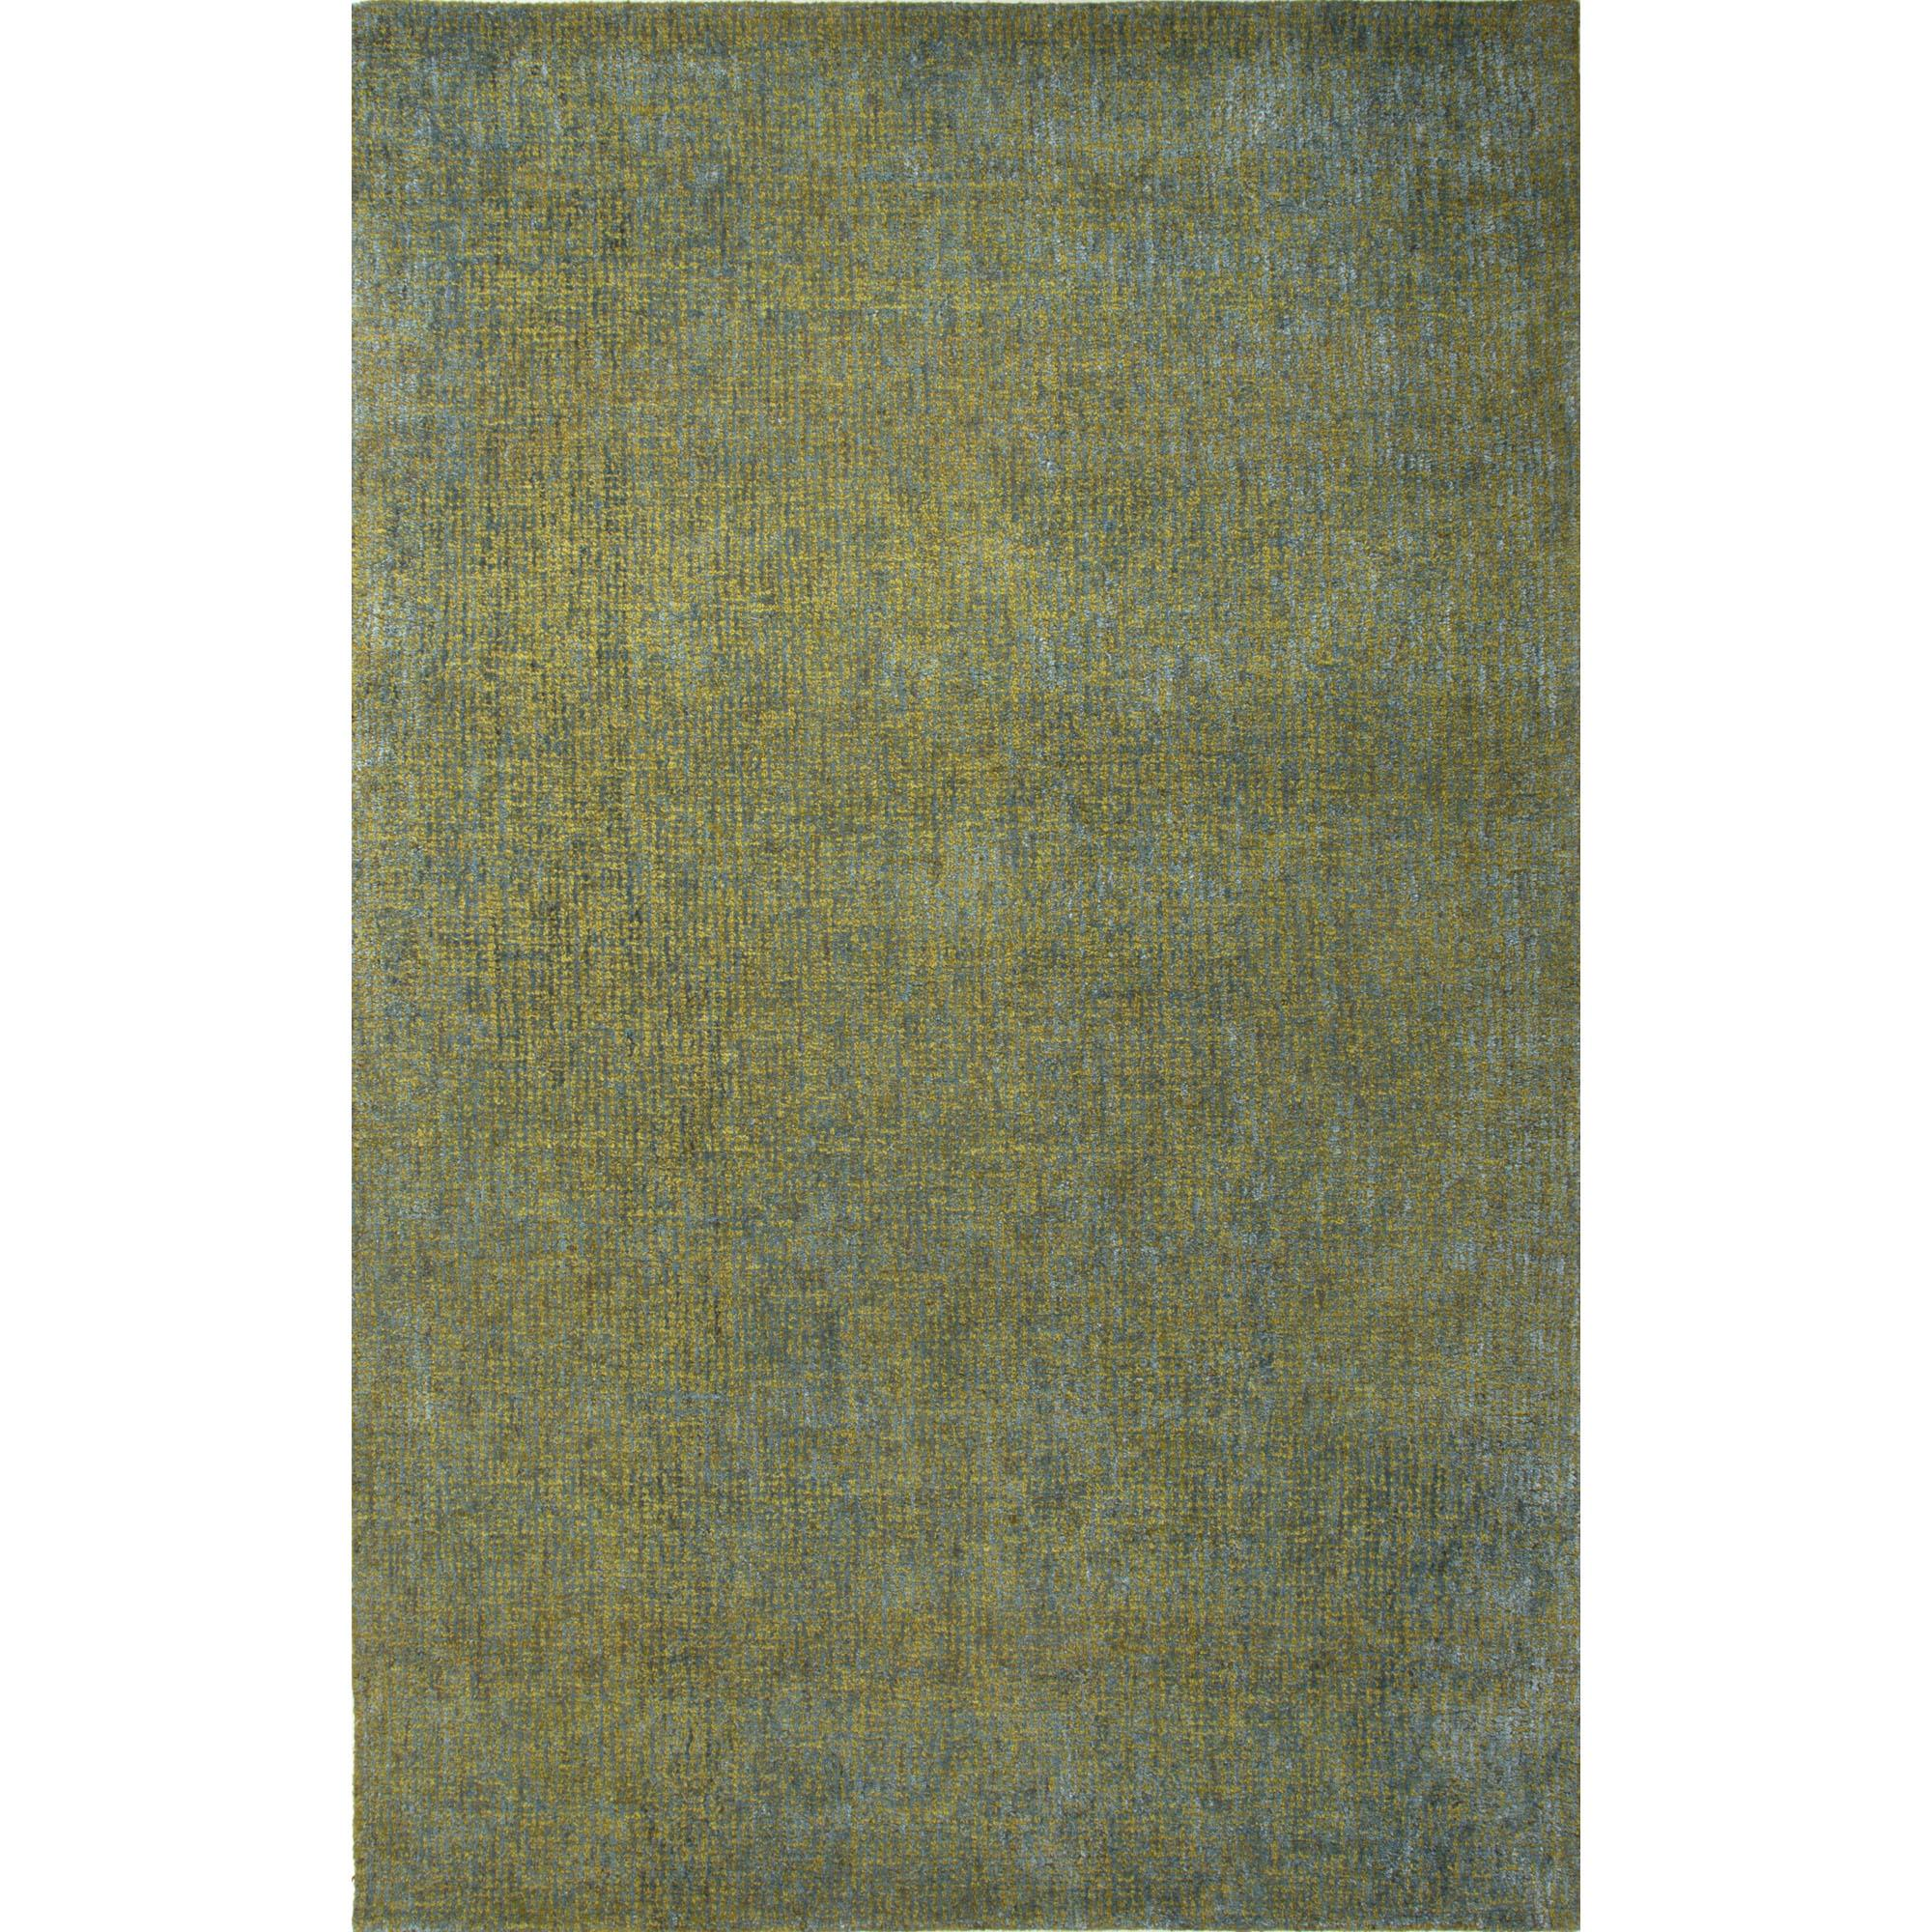 JAIPUR Rugs Britta Plus 8 x 10 Rug - Item Number: RUG119331